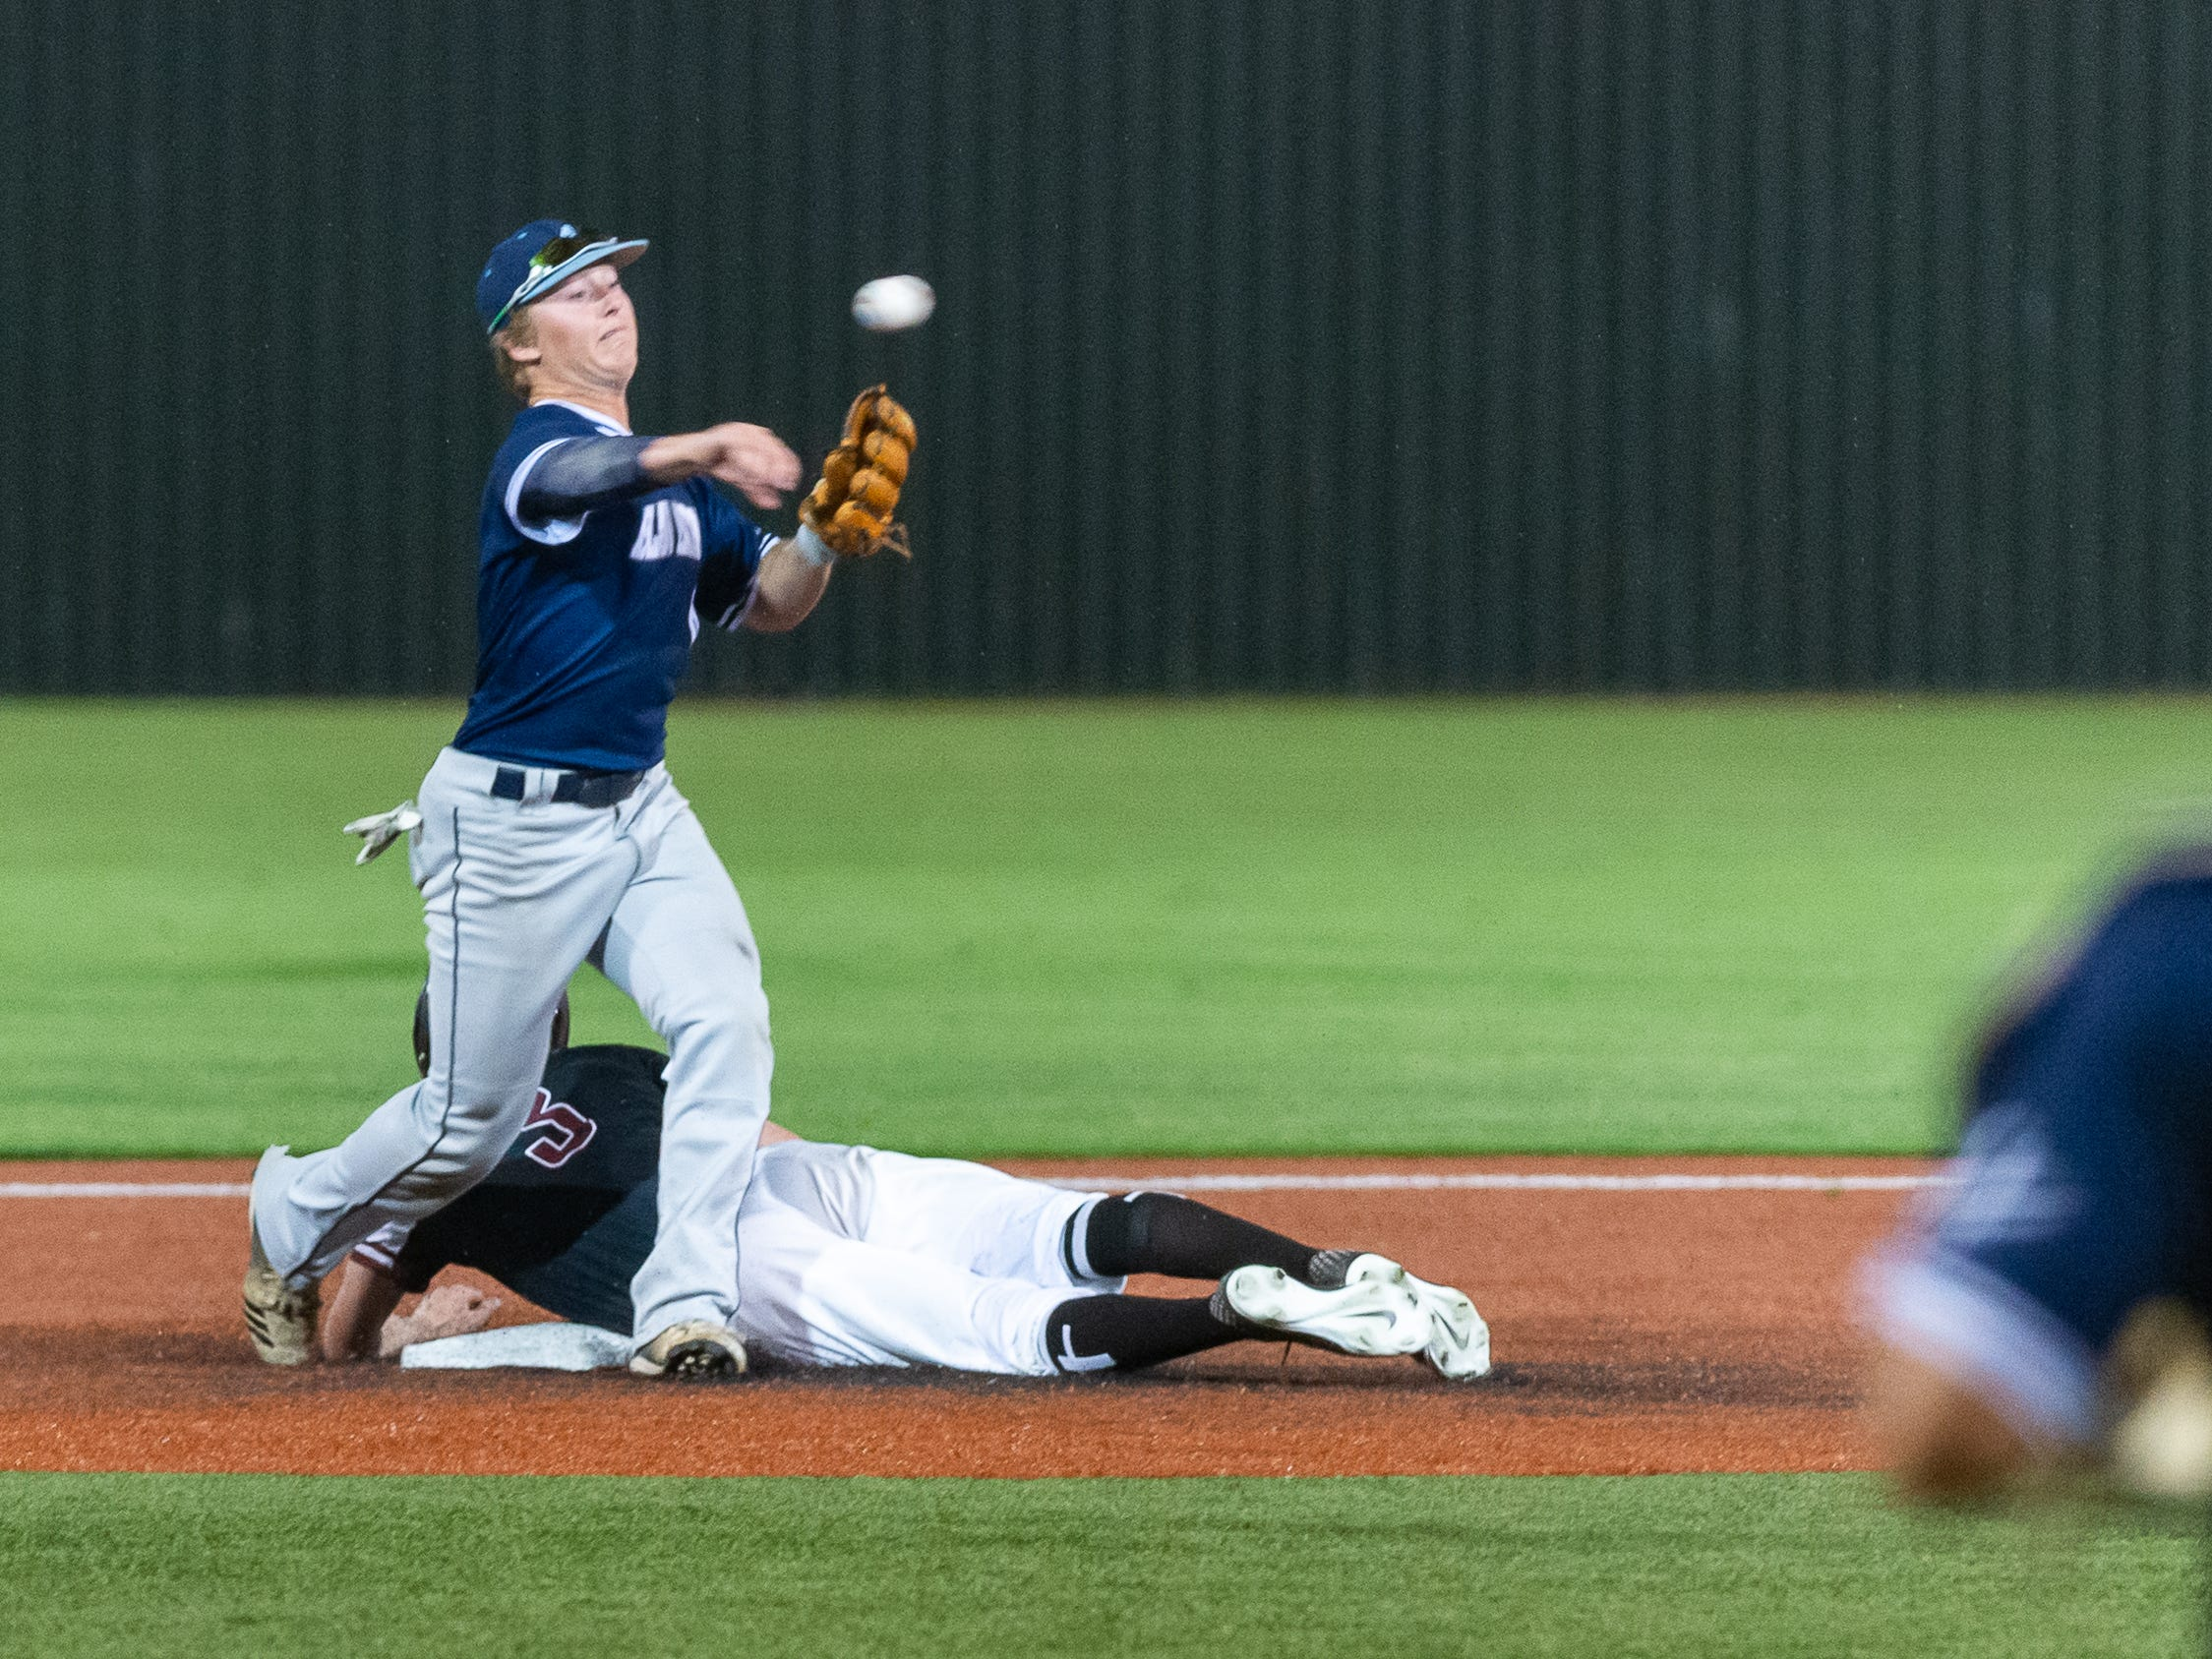 Seth Kerstetter turns the double play as Ascension Episcopal takes on St. Thomas Aquinas in the semi final round at the LHSAA State Championship. Wednesday, May 8, 2019.